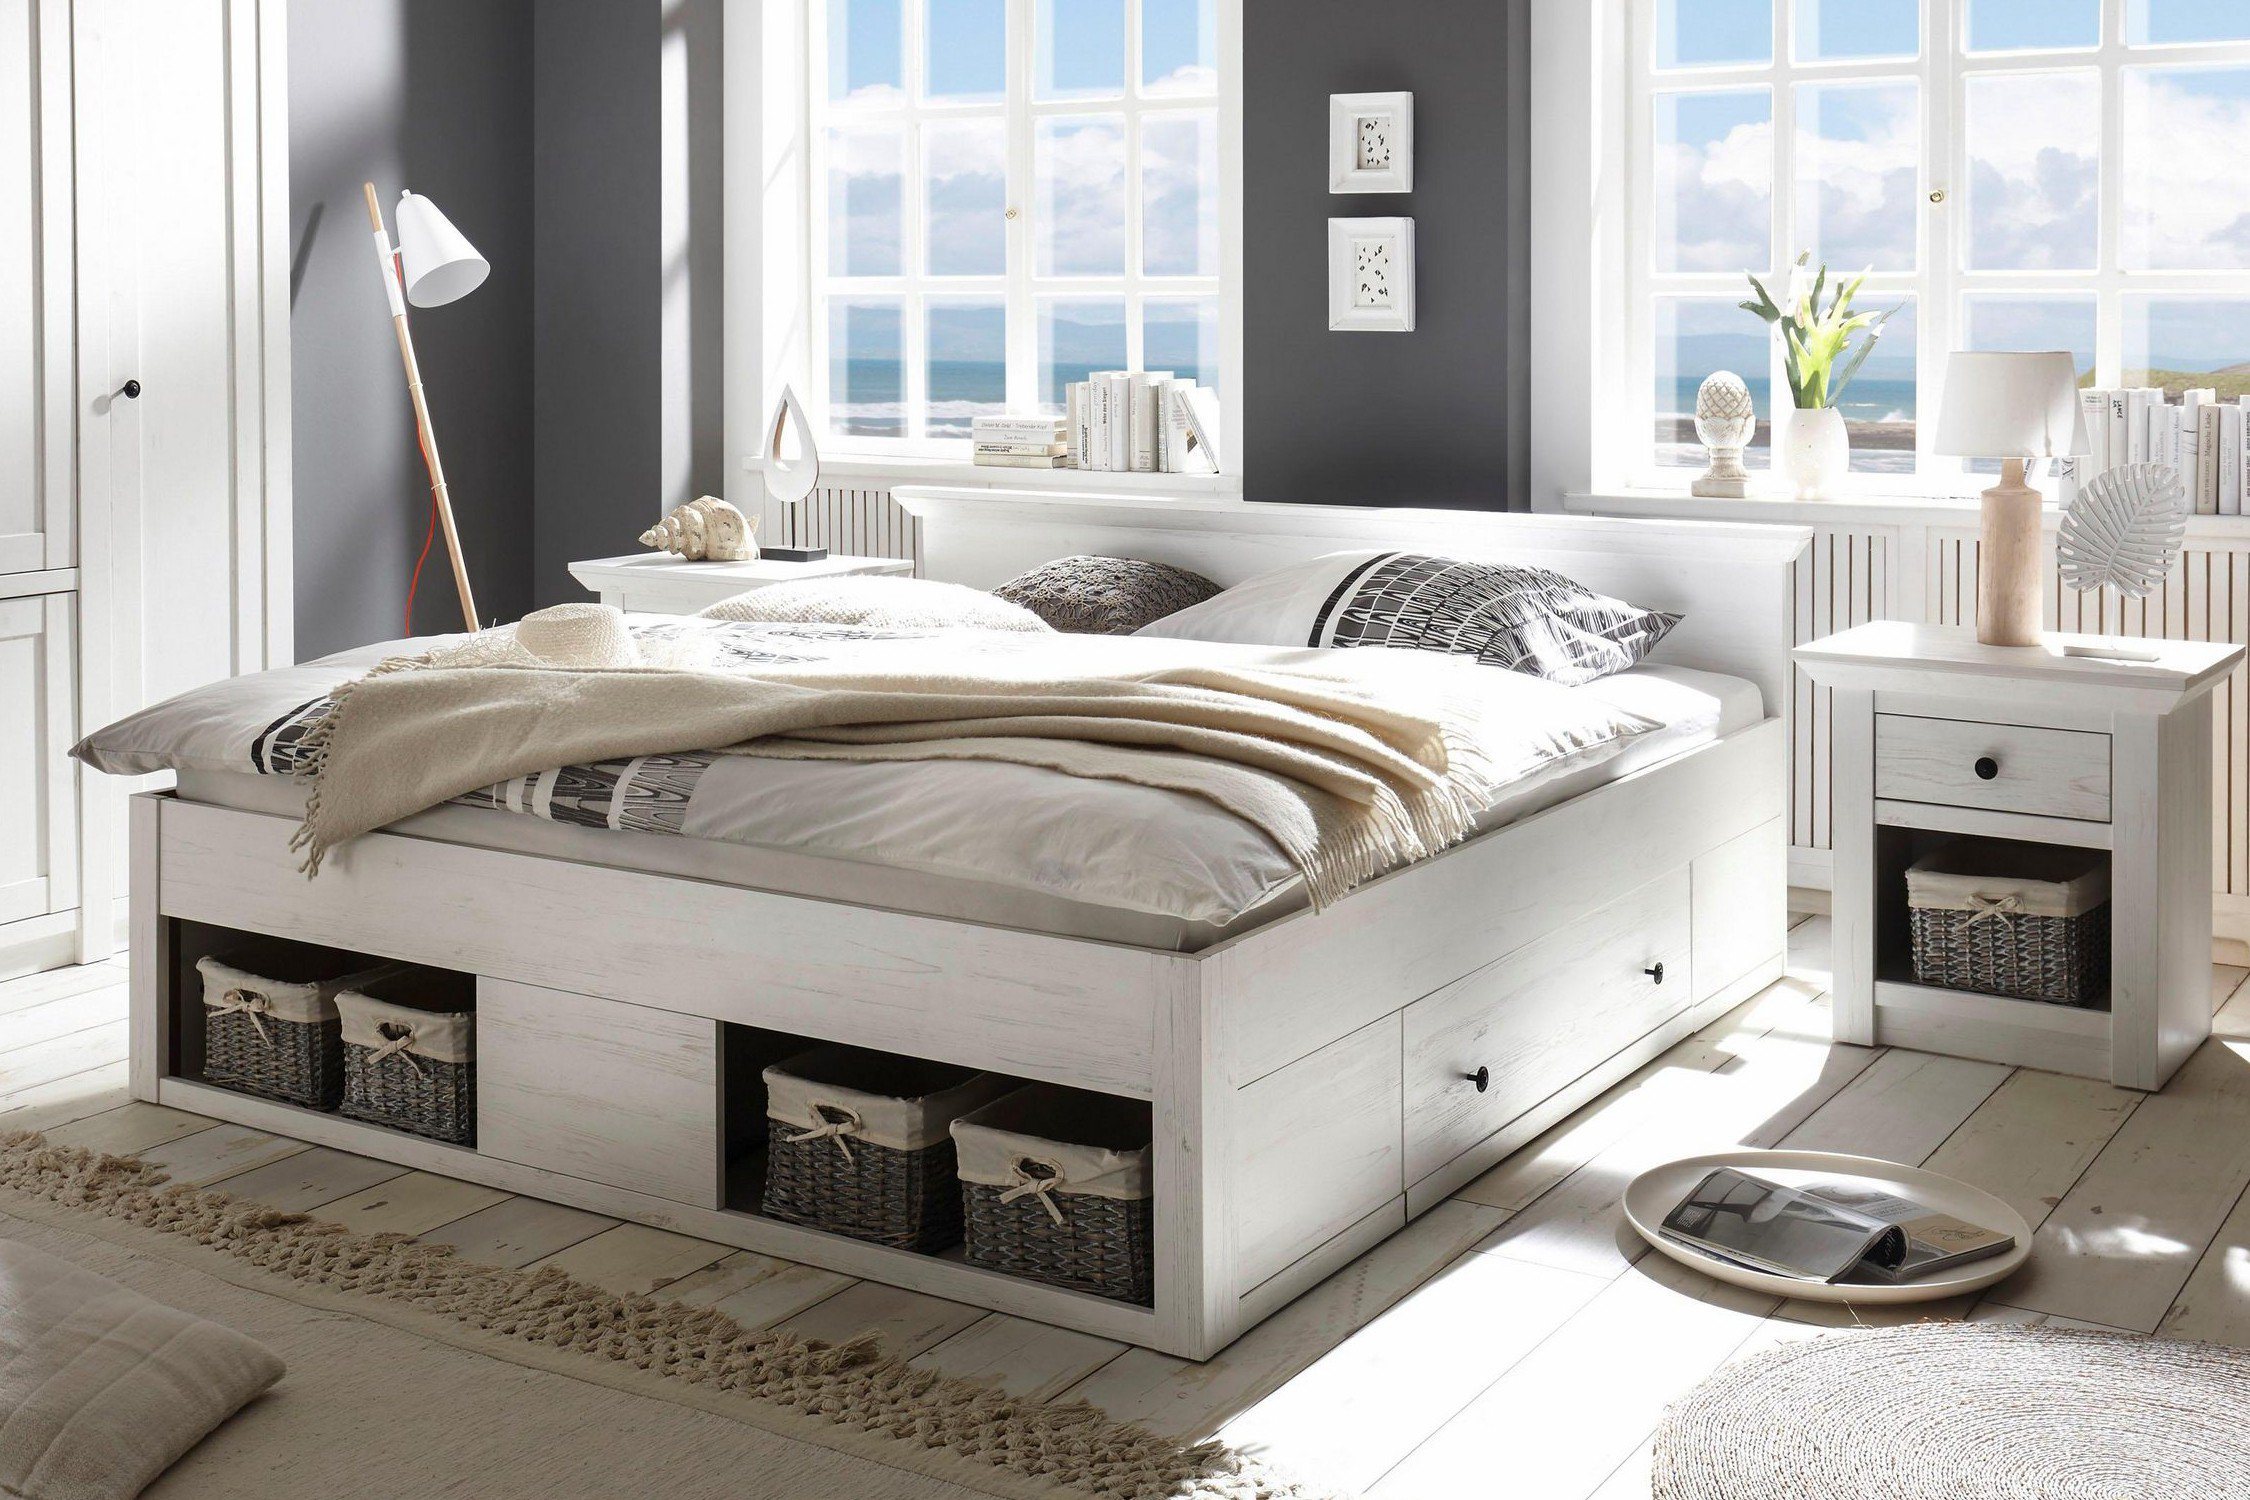 imv steinheim doppelbett westerland wei m bel letz ihr online shop. Black Bedroom Furniture Sets. Home Design Ideas